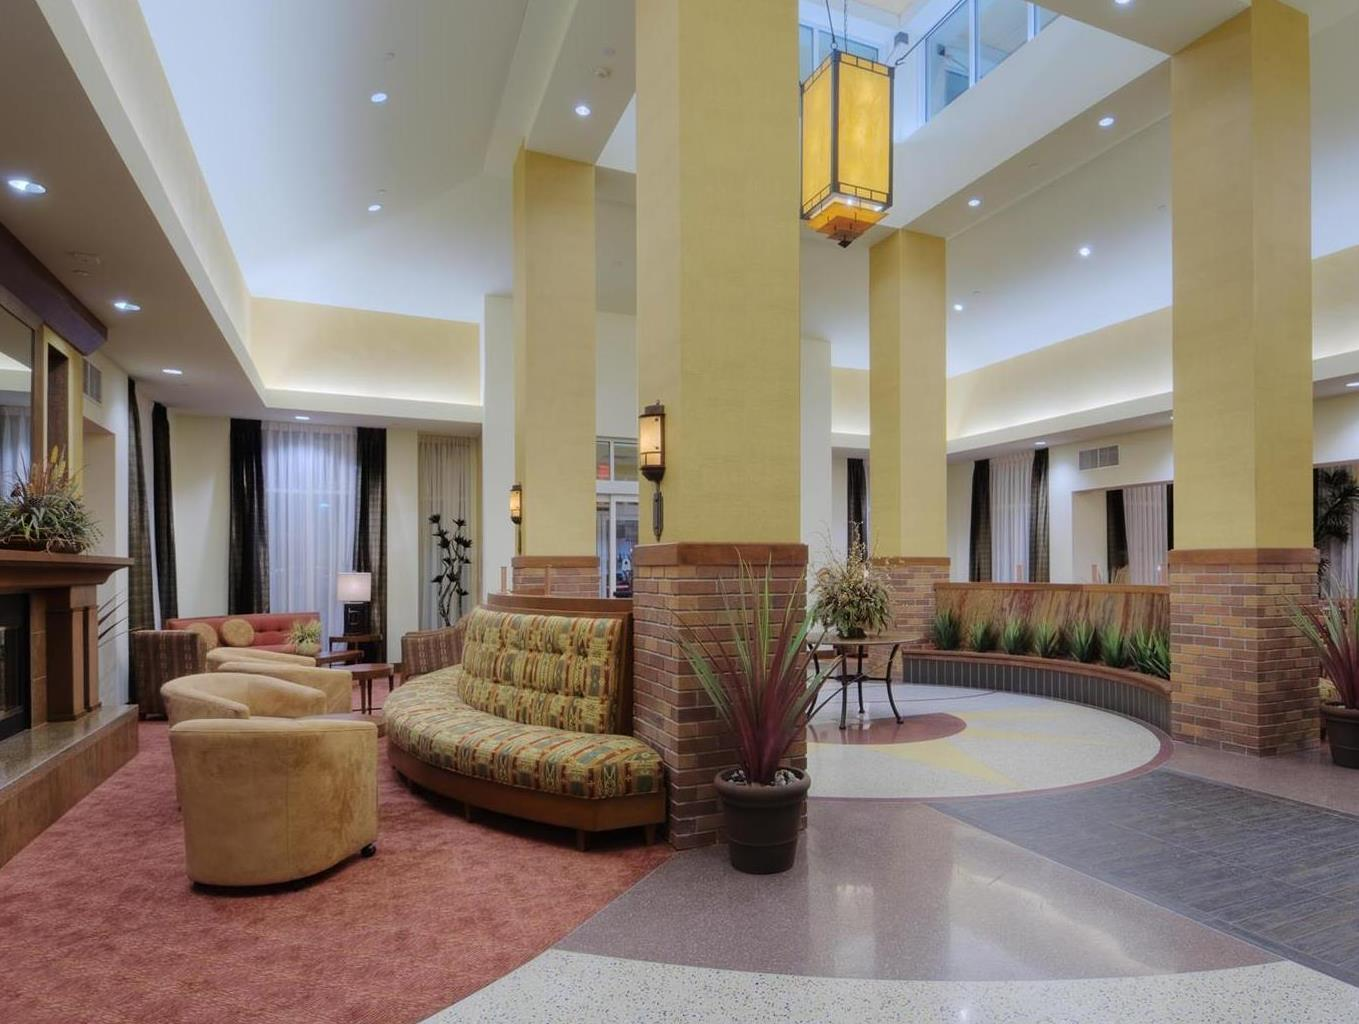 More About Hilton Garden Inn Yuma Pivot Point Pictures Gallery